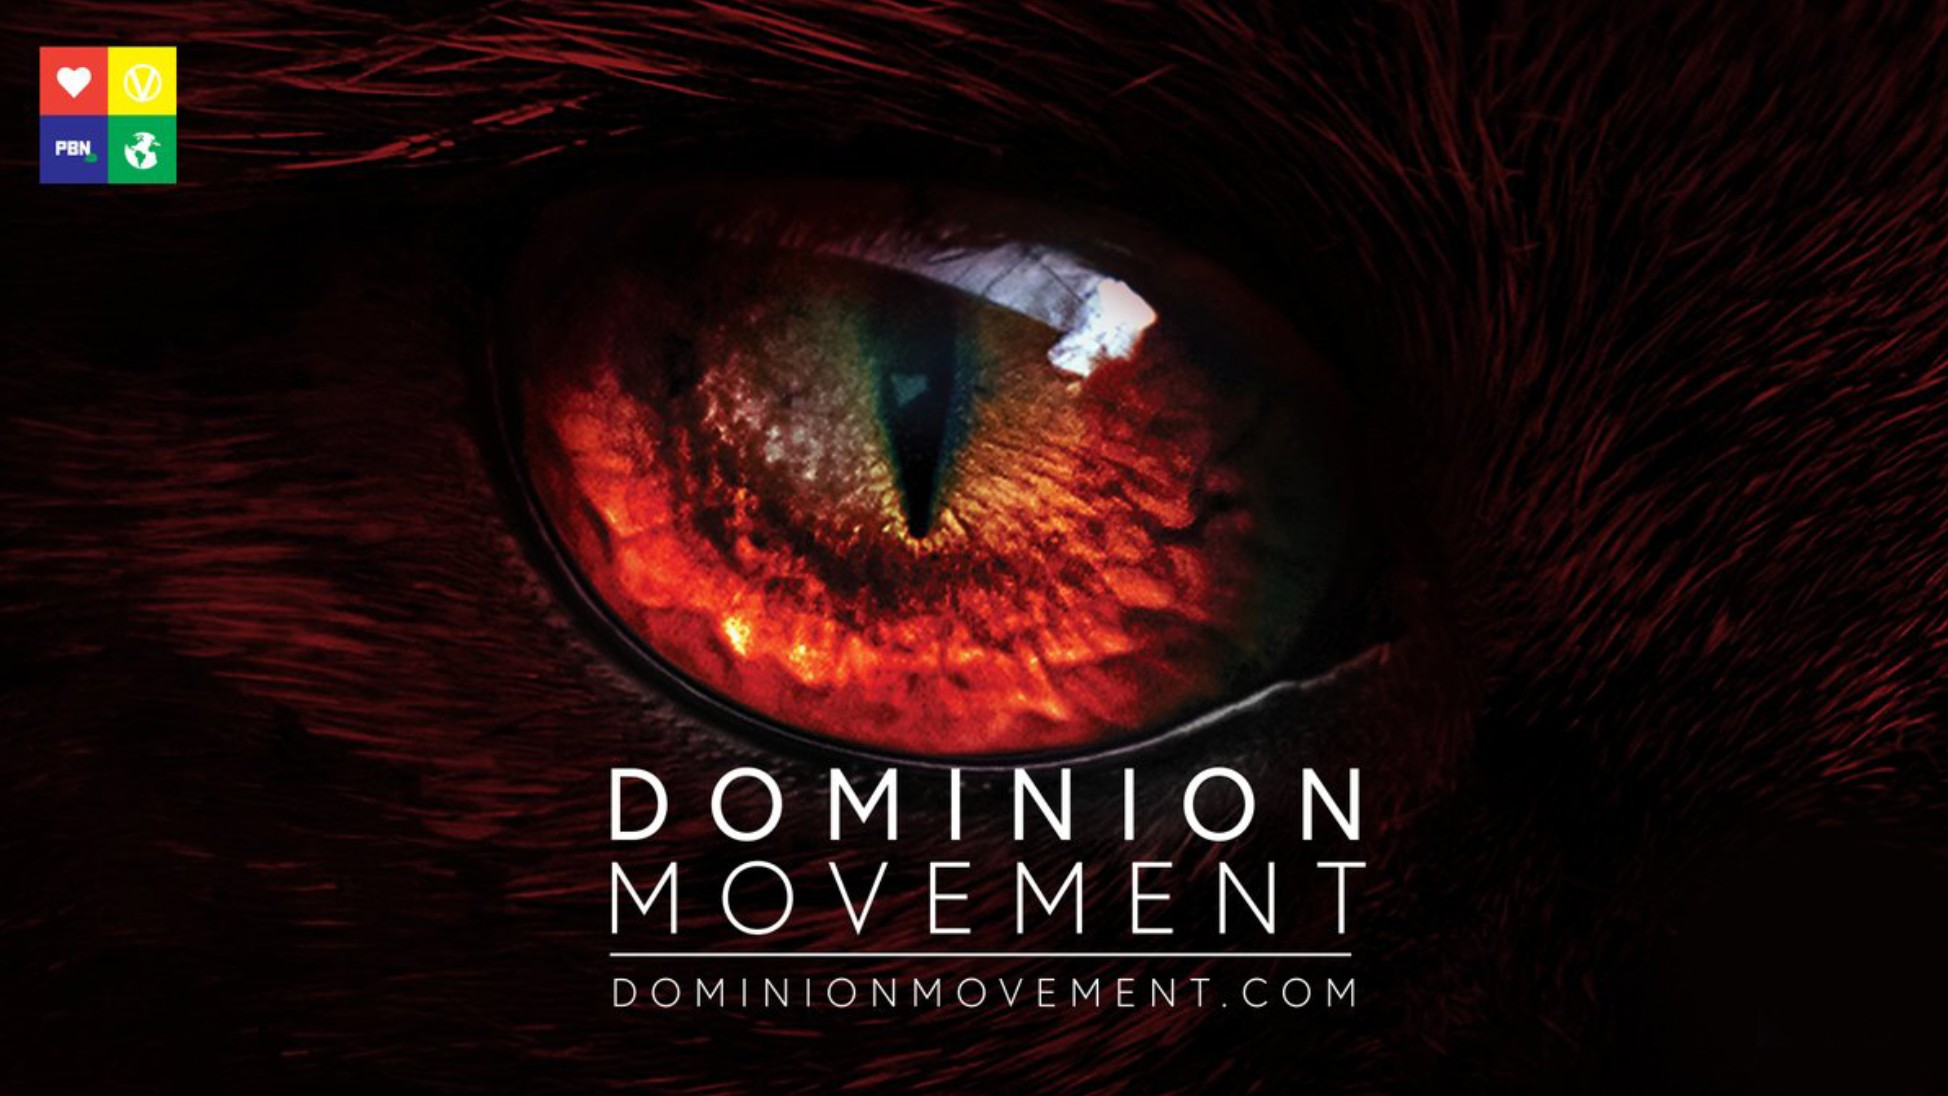 Dominion Documentary available free on YouTube